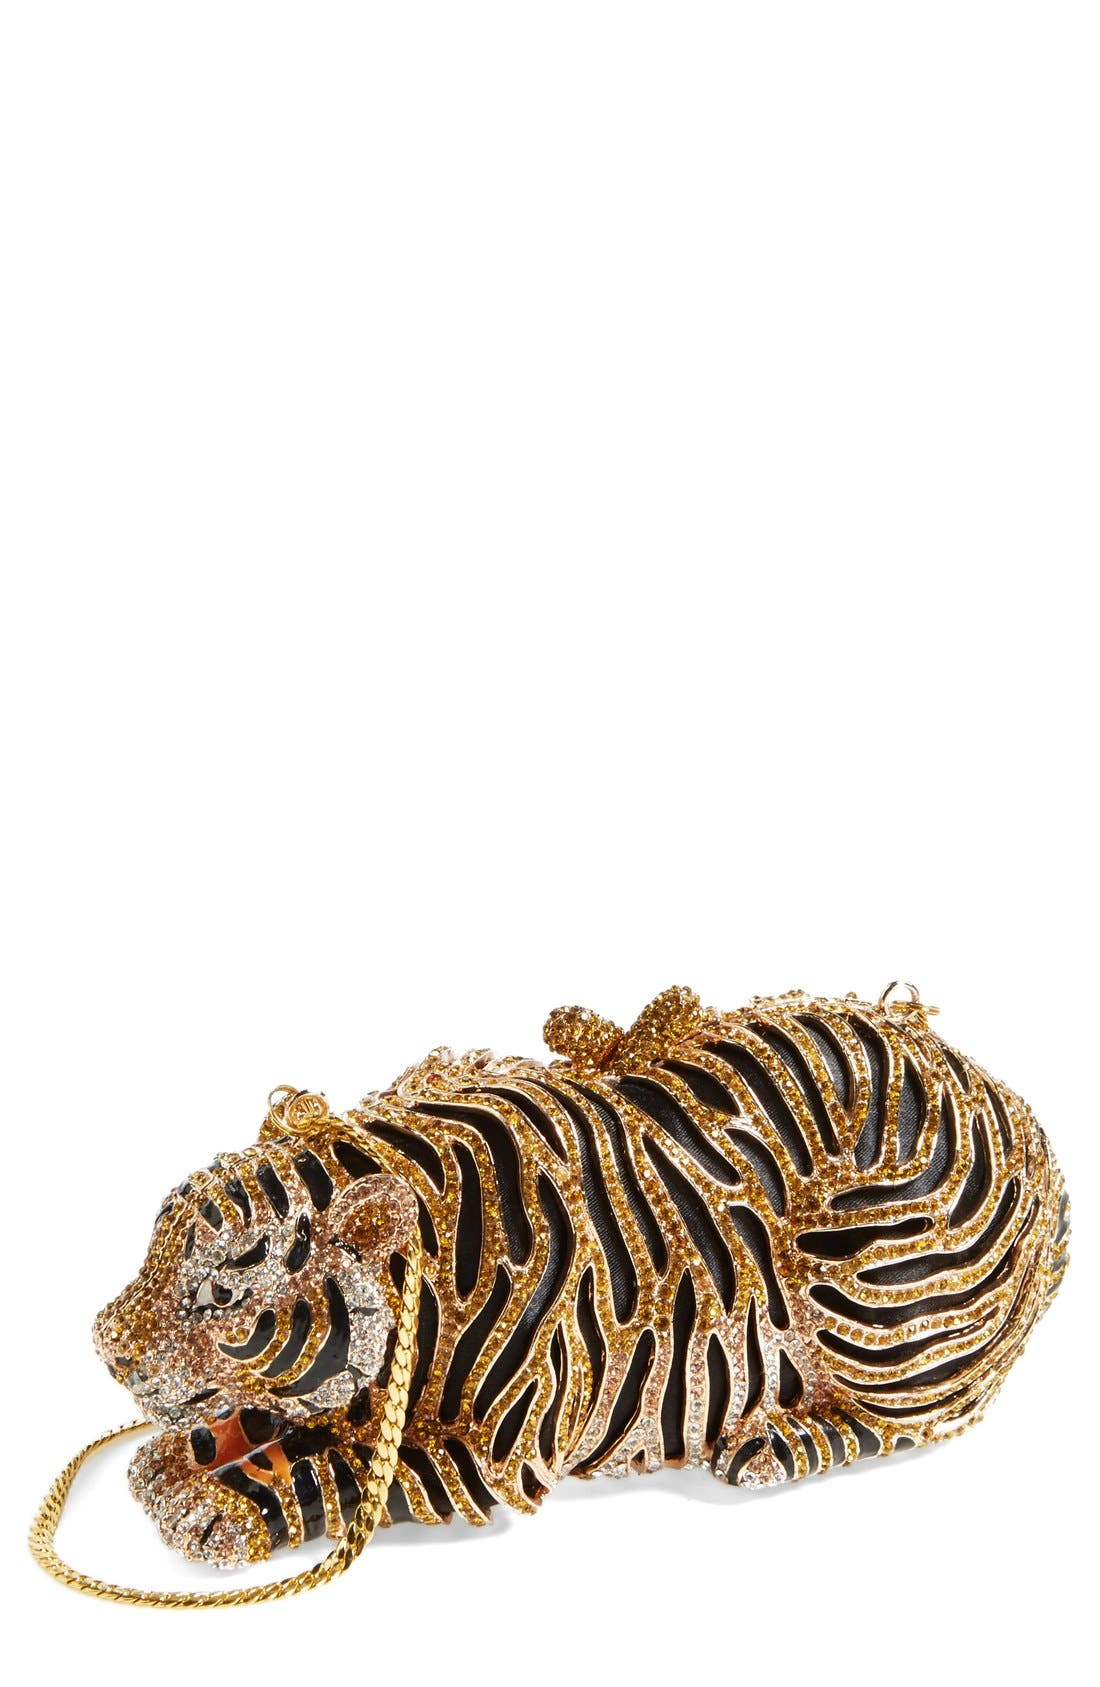 Alternate Image 1 Selected - Natasha Couture Tiger Minaudiere